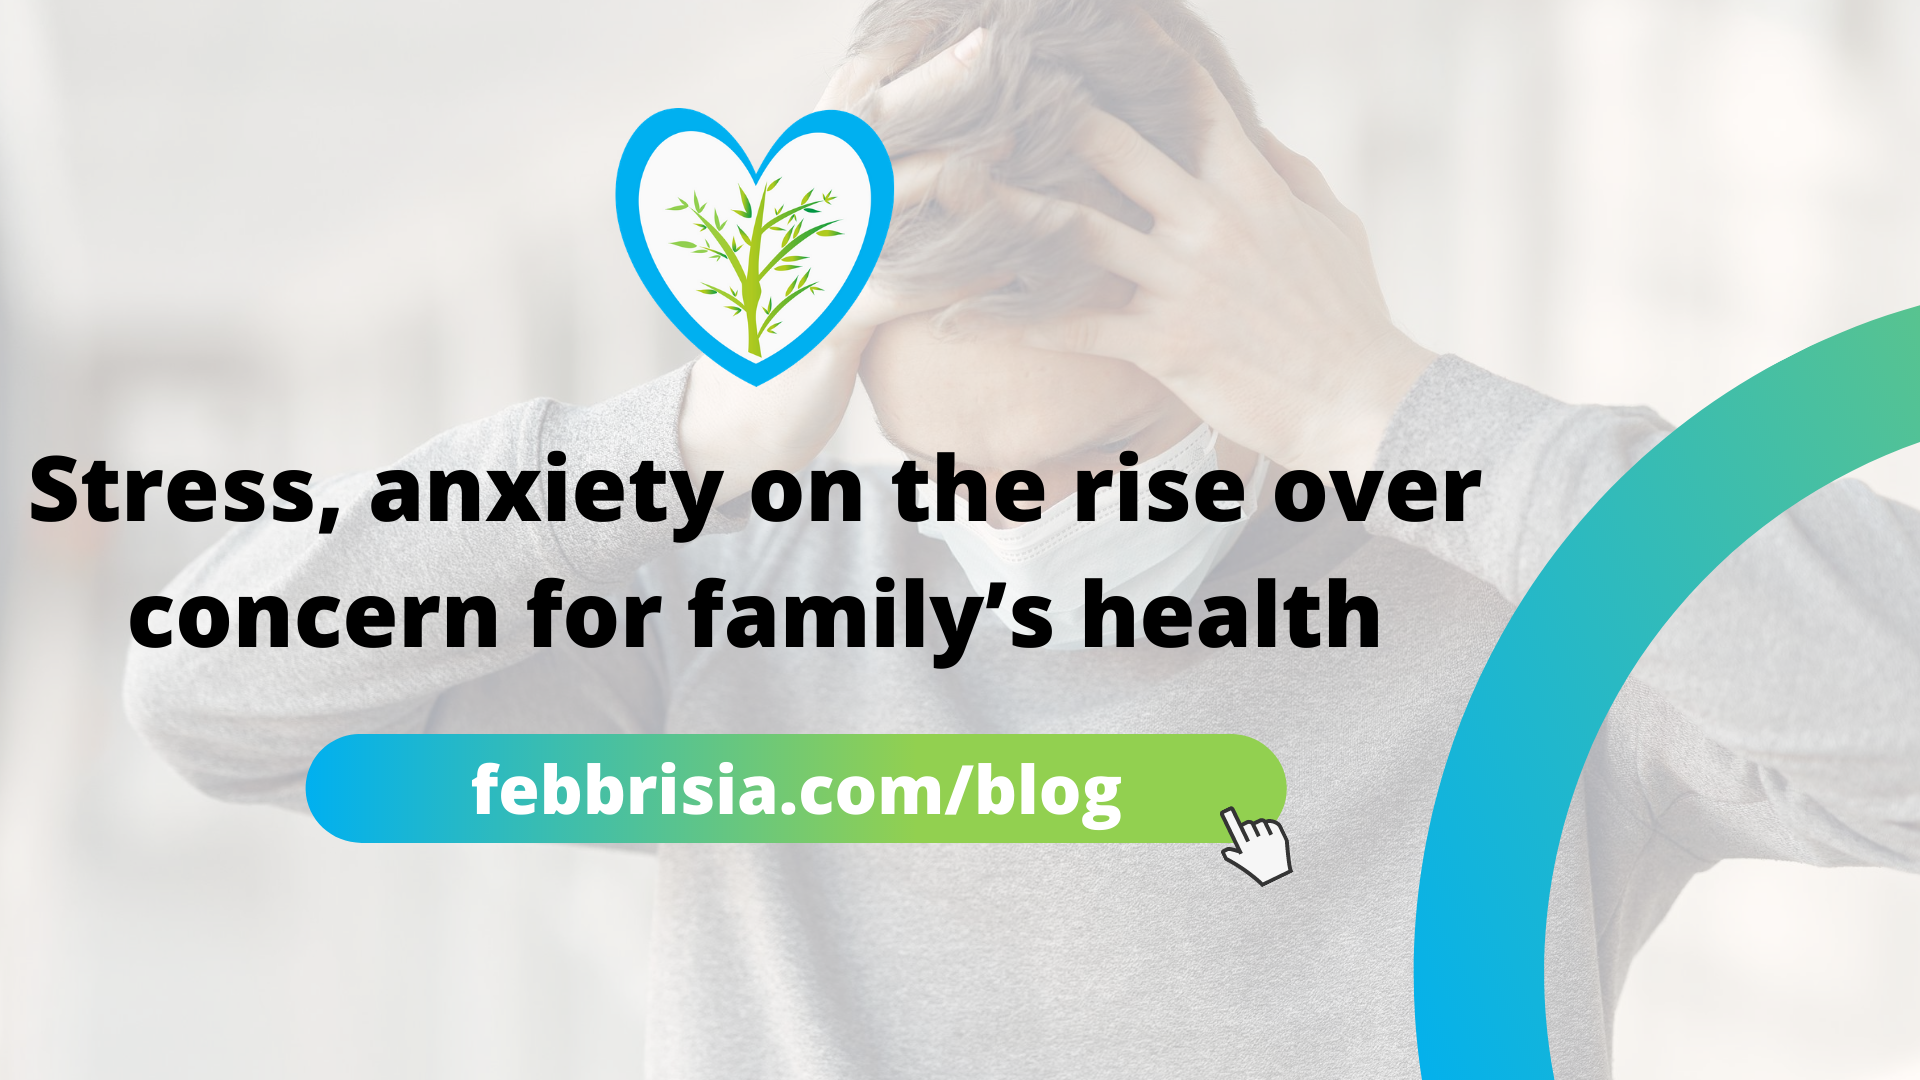 Stress, anxiety on the rise over concern for family's health: Study